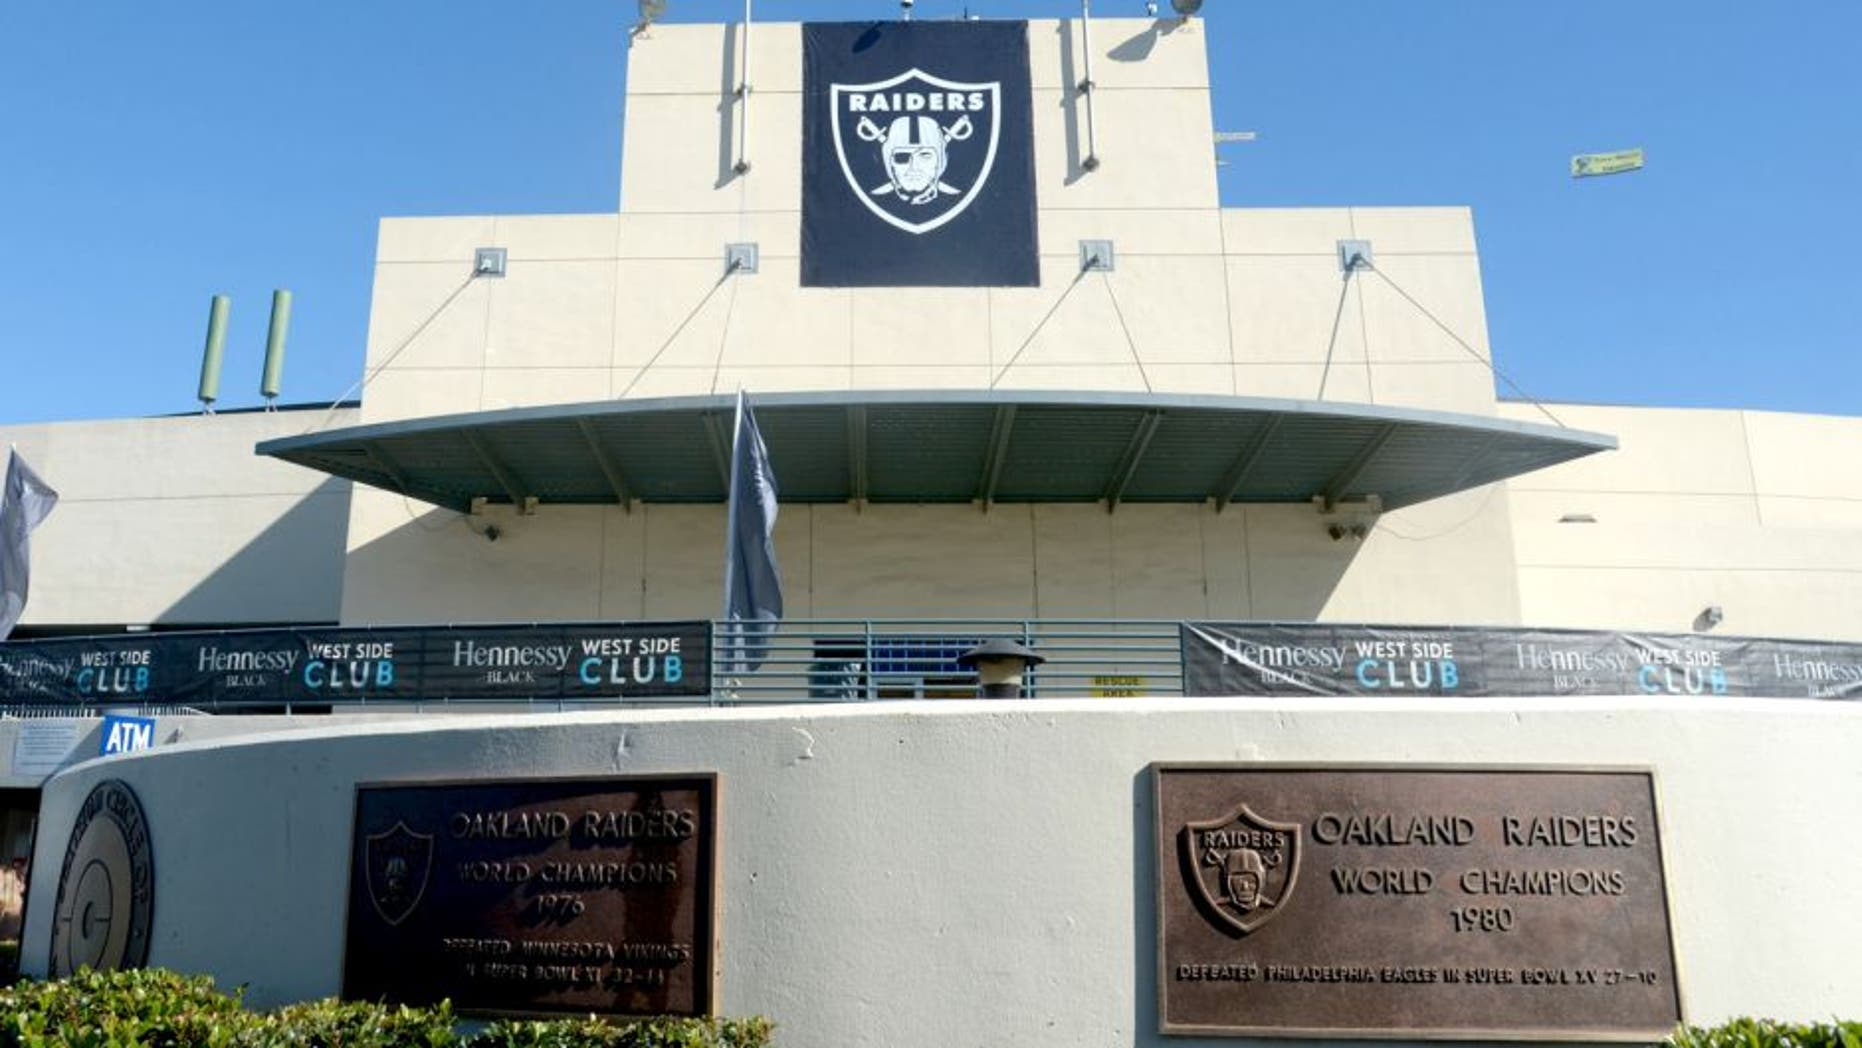 Nov 4, 2012; Oakland, CA, USA; General view of the O.co Coliseum exterior with commemorative plaques of the Oakland Raiders victories in Super Bowl XI and XV. Mandatory Credit: Kirby Lee/Image of Sport-USA TODAY Sports